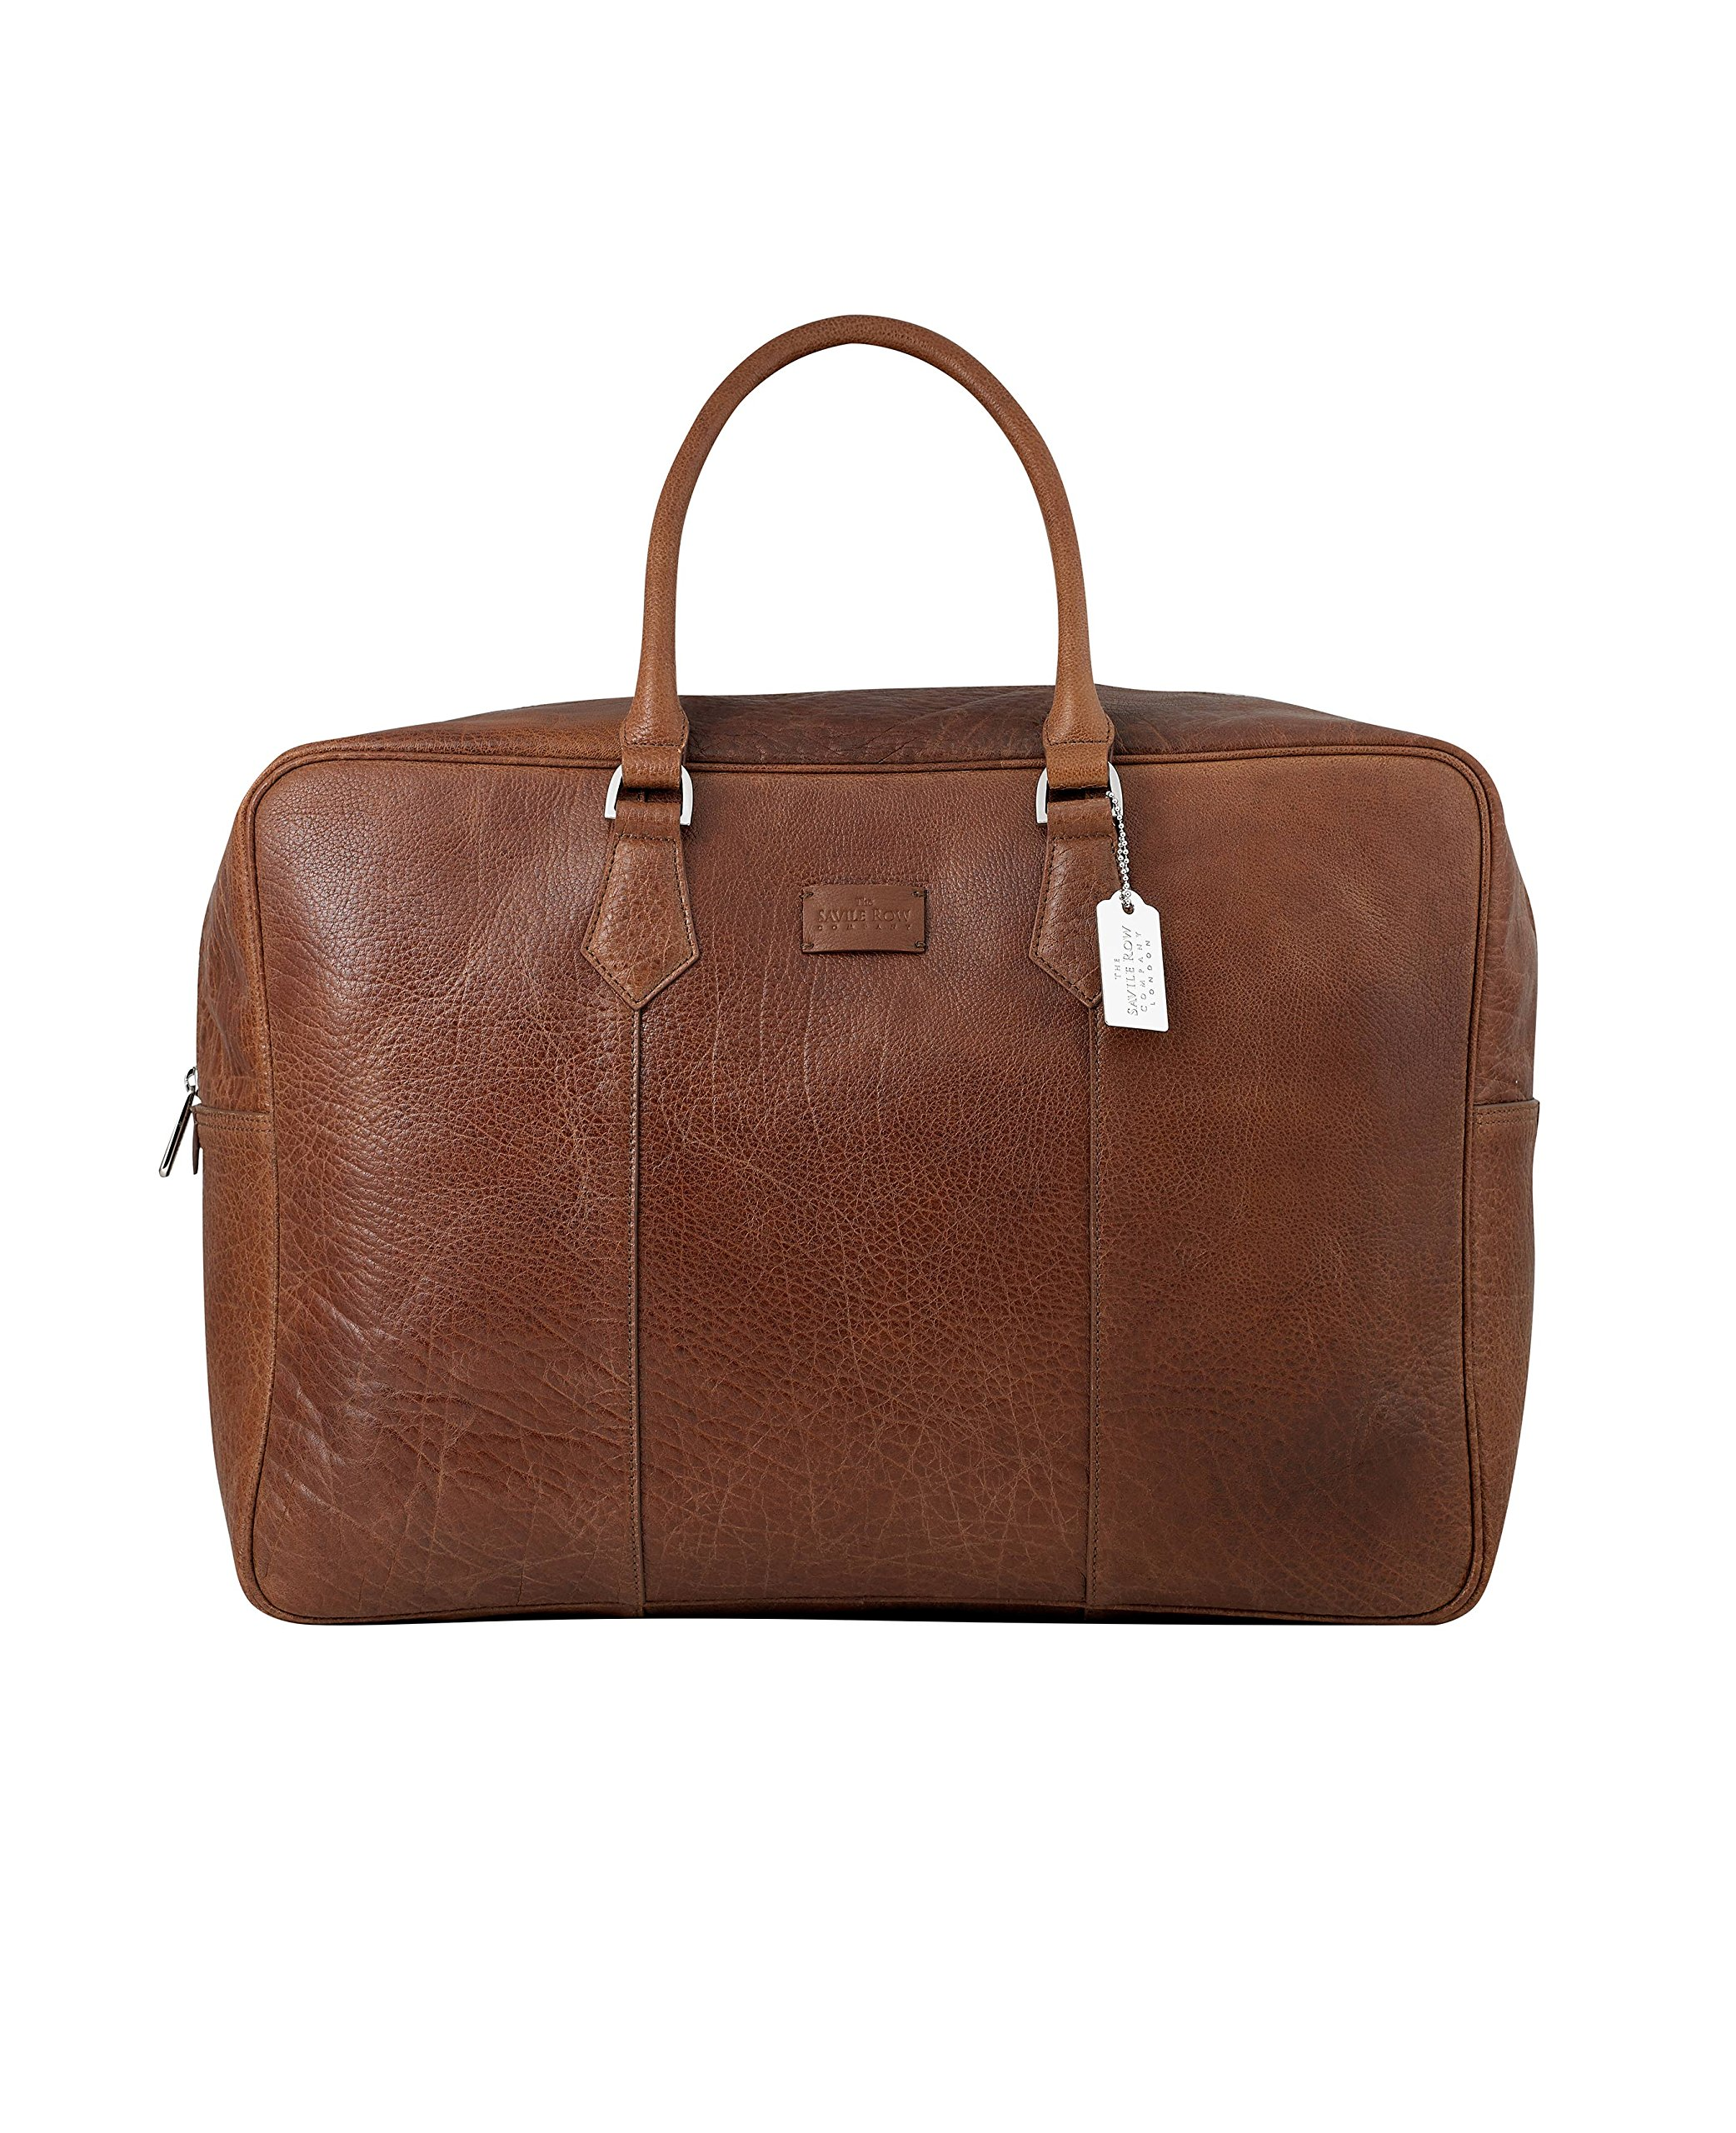 Savile Row Men's Tan Leather Holdall